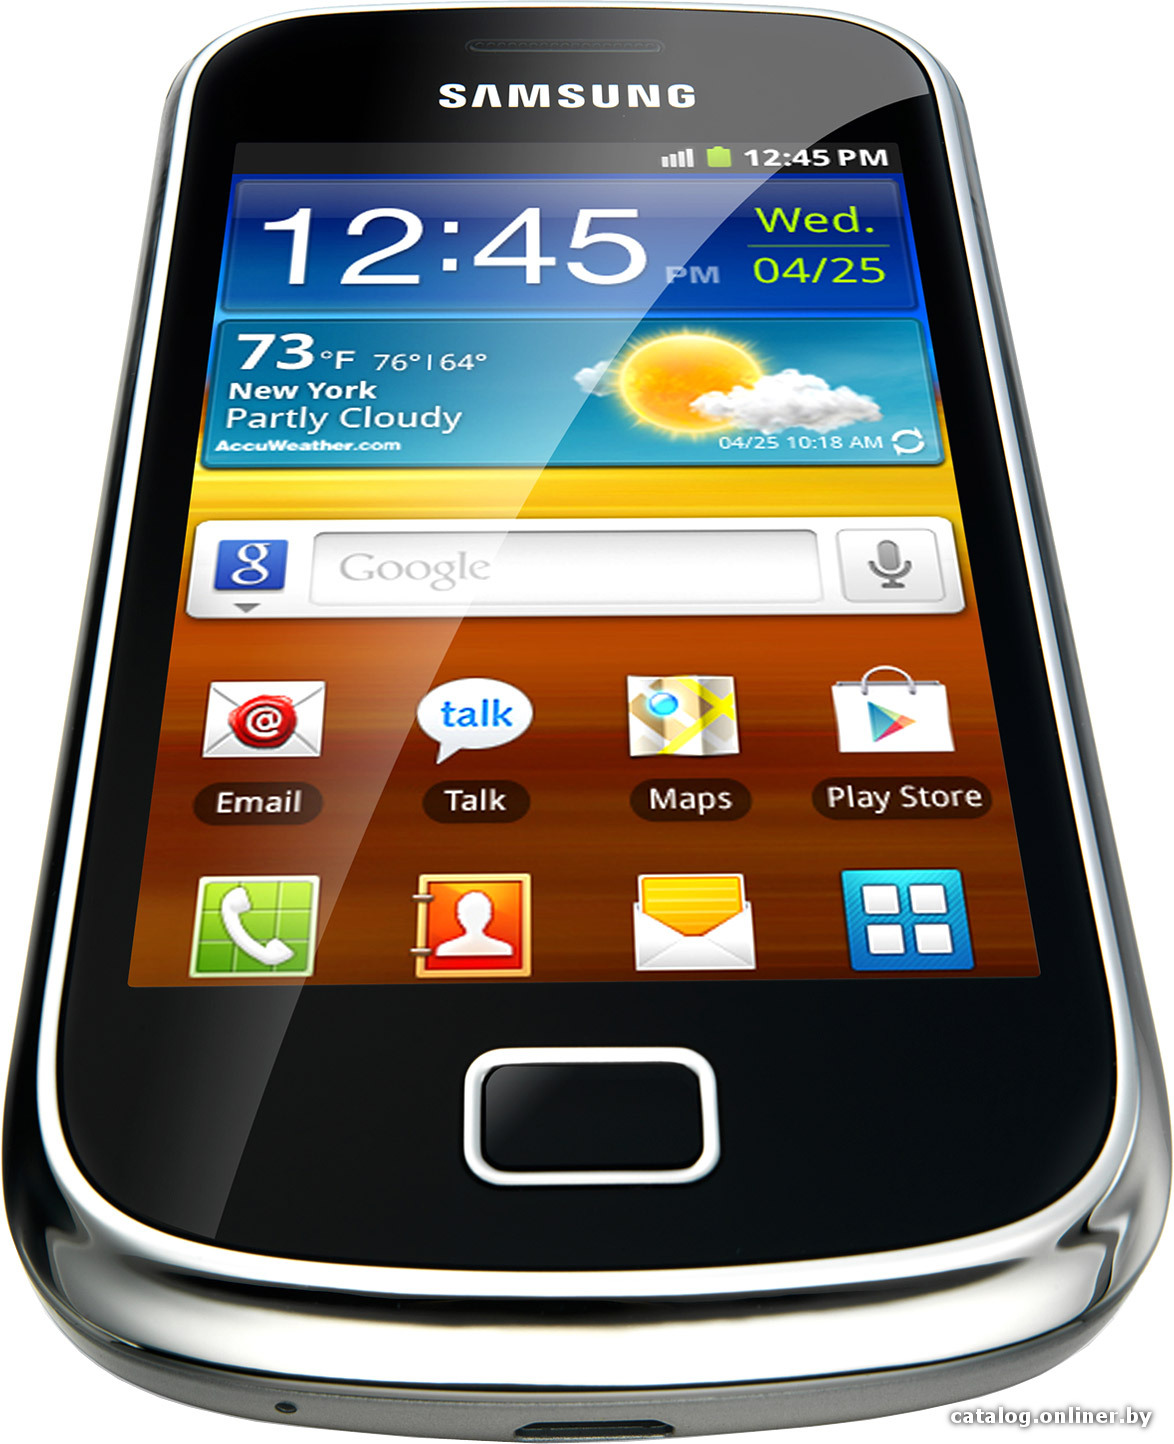 Download Game Samsung Galaxy Mini 2 S6500 Dimension